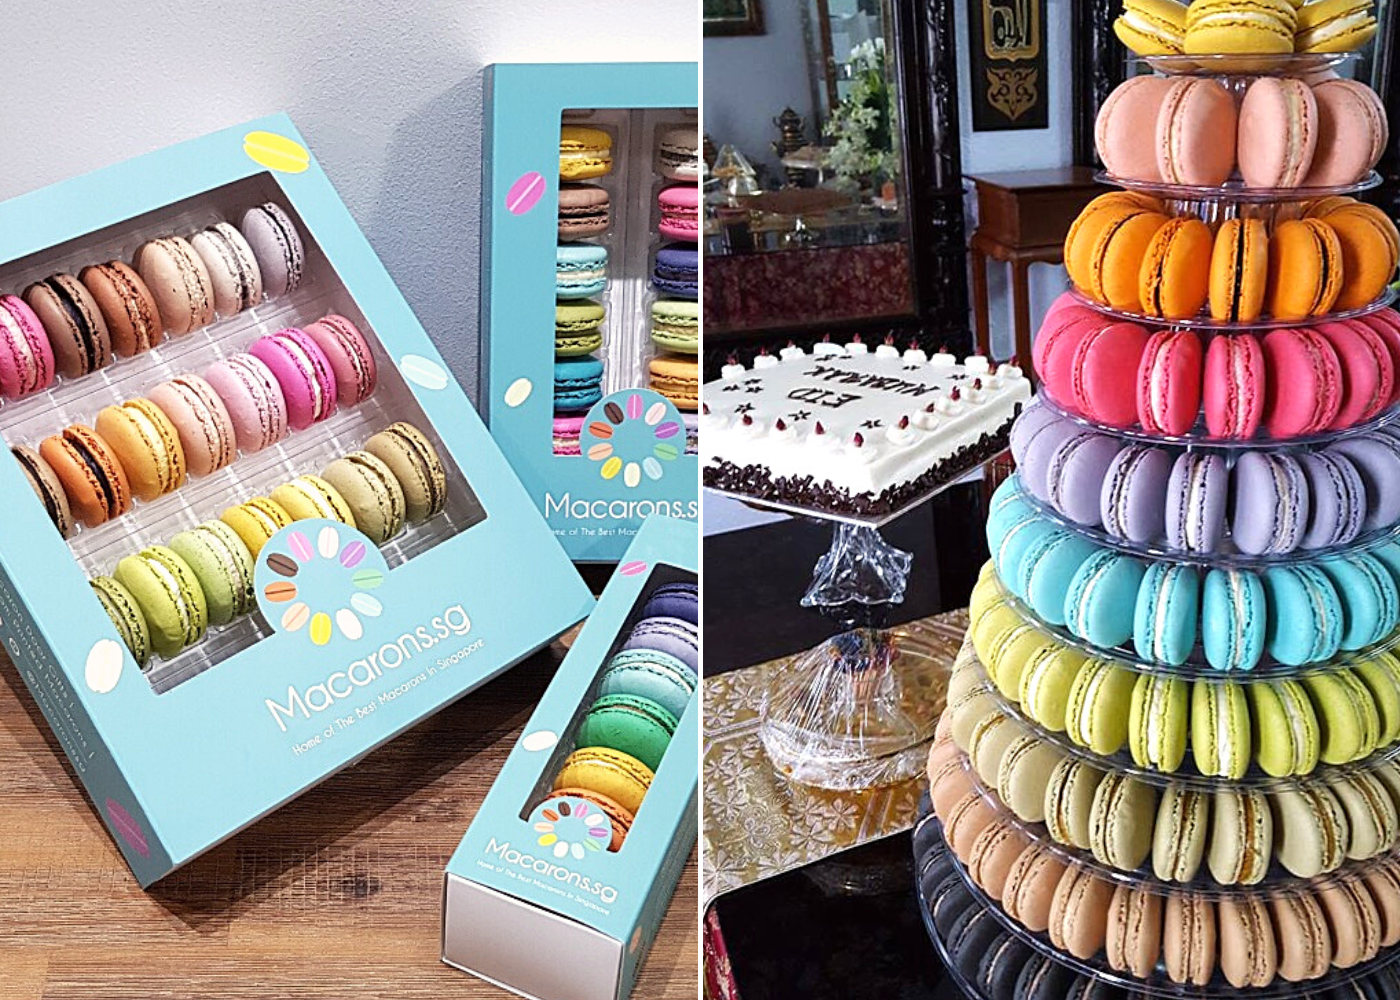 No need to hunt for macaron recipes when you can get the best macarons in Singapore delivered to you: Macarons.sg